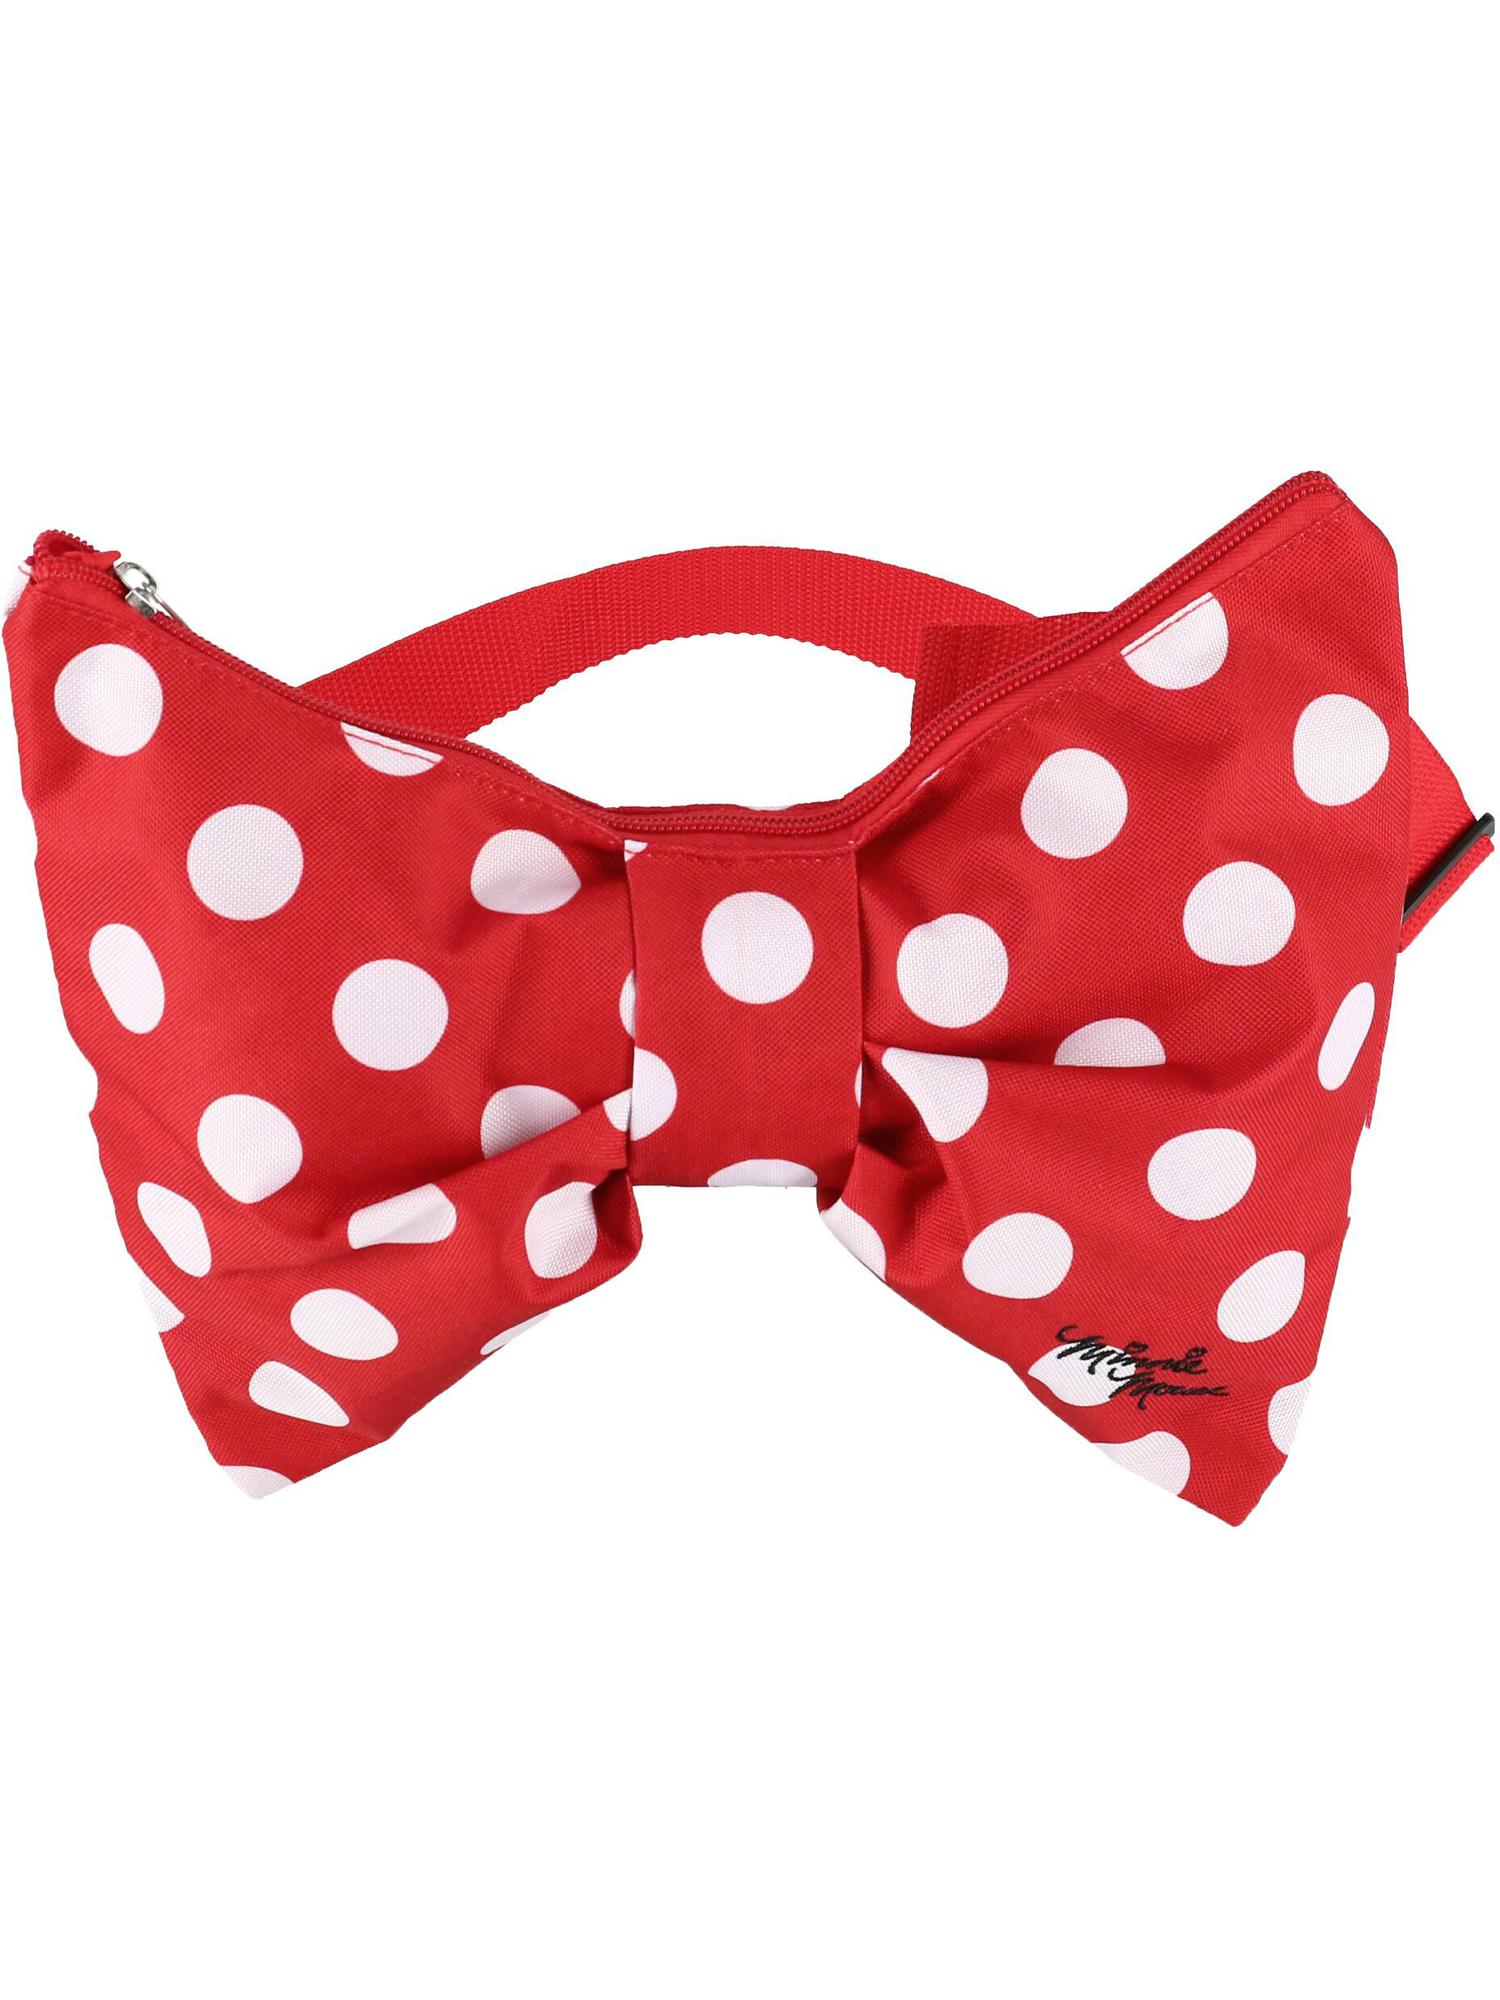 Size one size Minnie Mouse Polka Dot Bow Waist Pack, Red